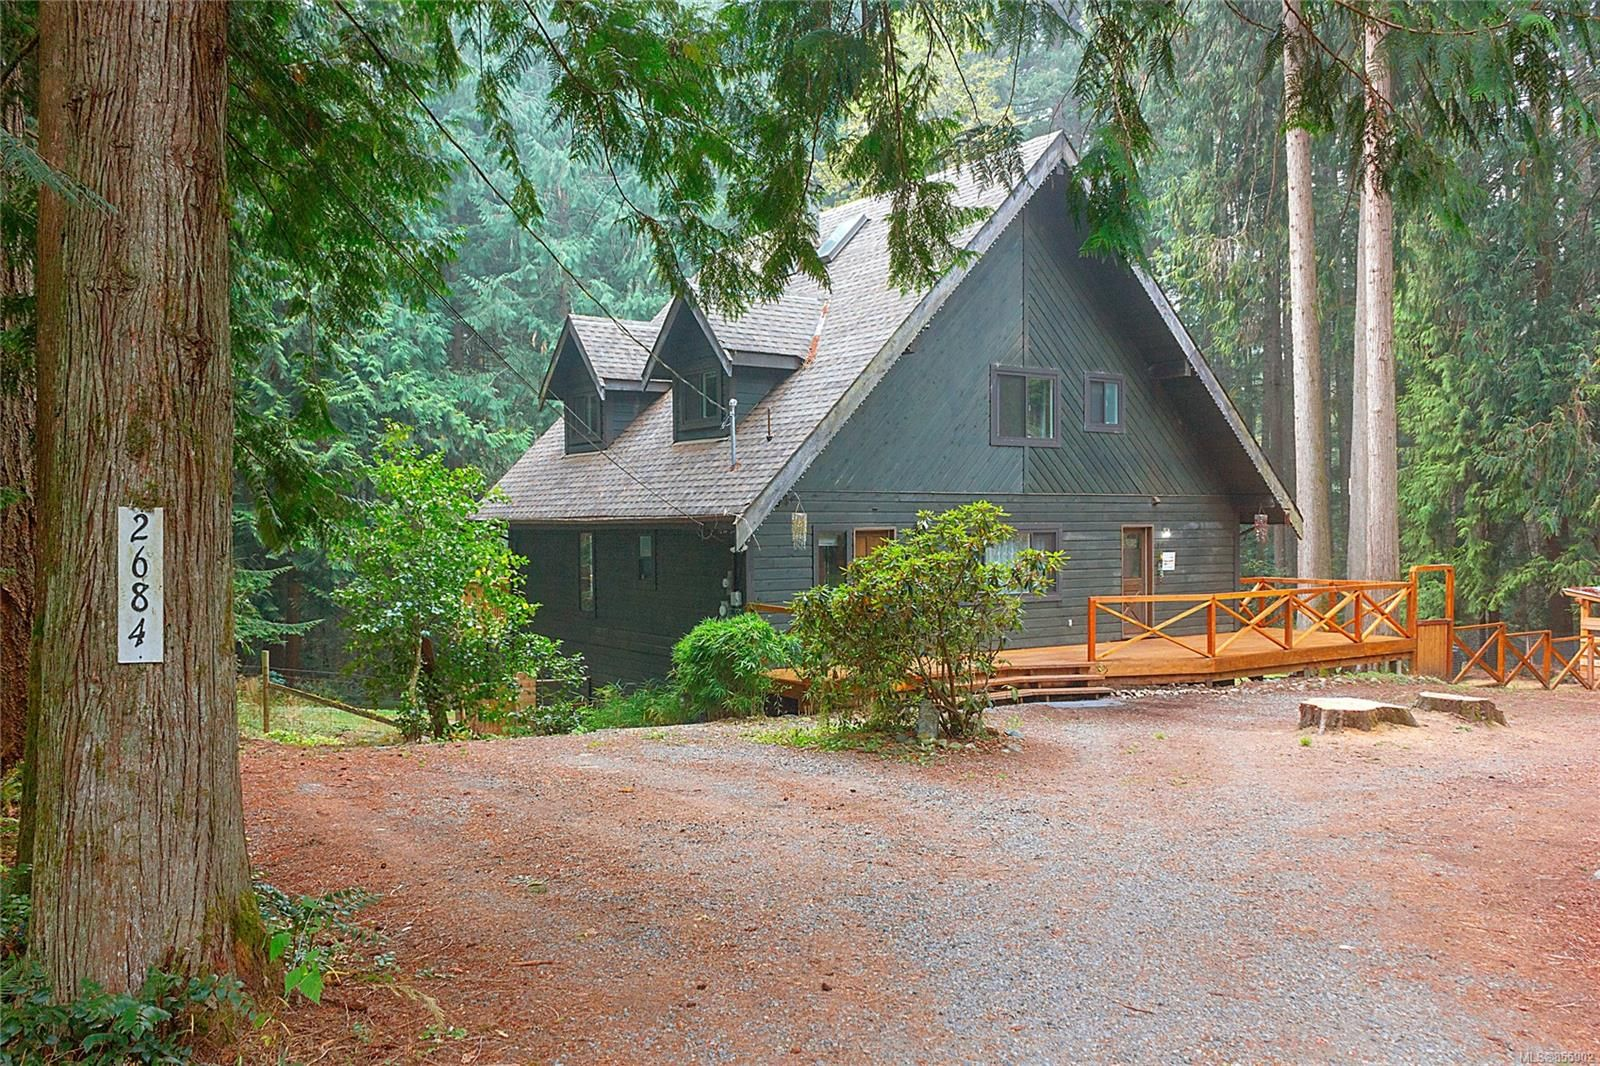 Main Photo: 2684 Sunny Glades Lane in : ML Shawnigan House for sale (Malahat & Area)  : MLS®# 855902